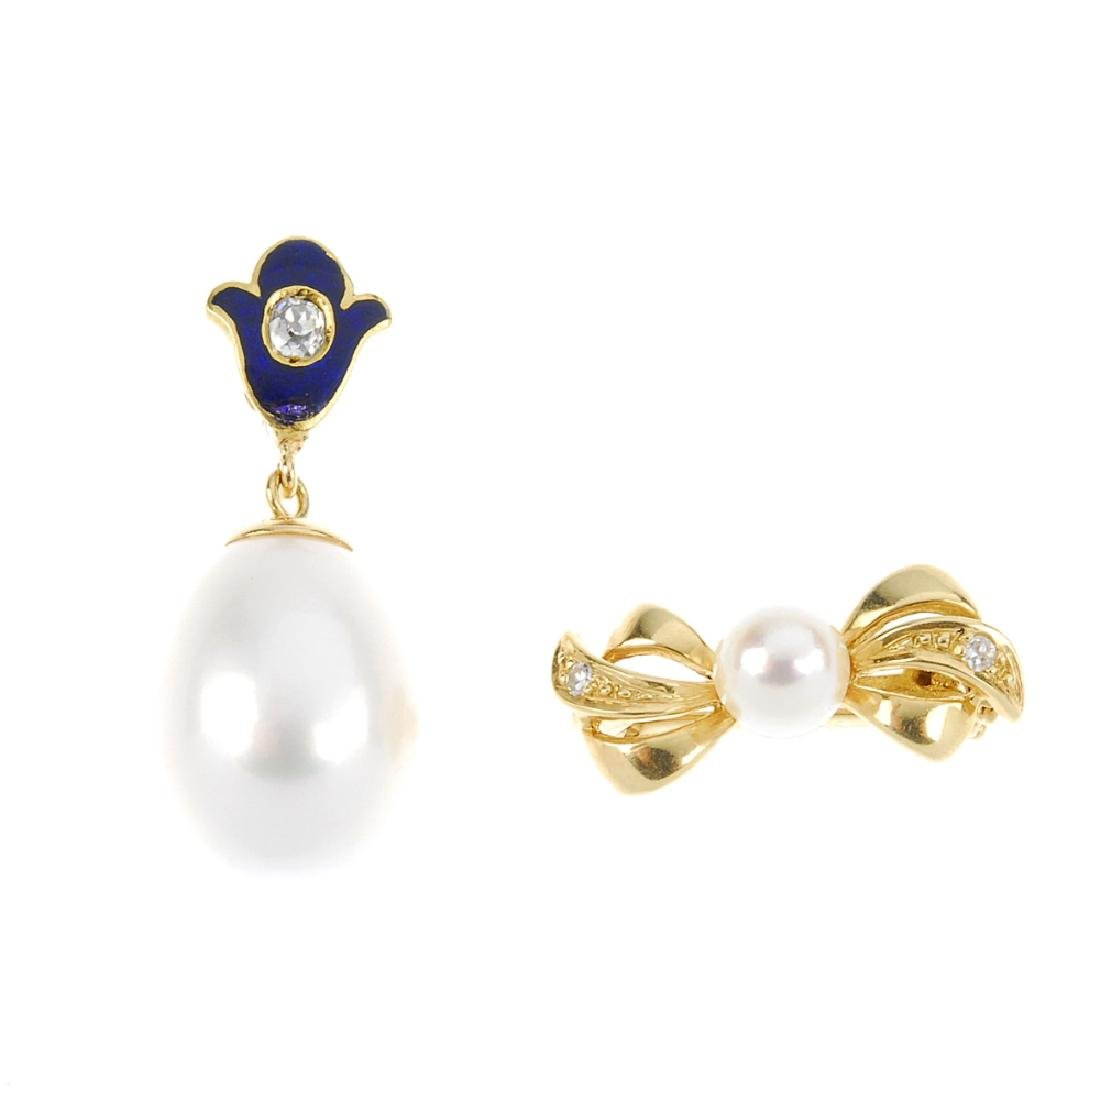 A cultured pearl and diamond spacer and pendant. The